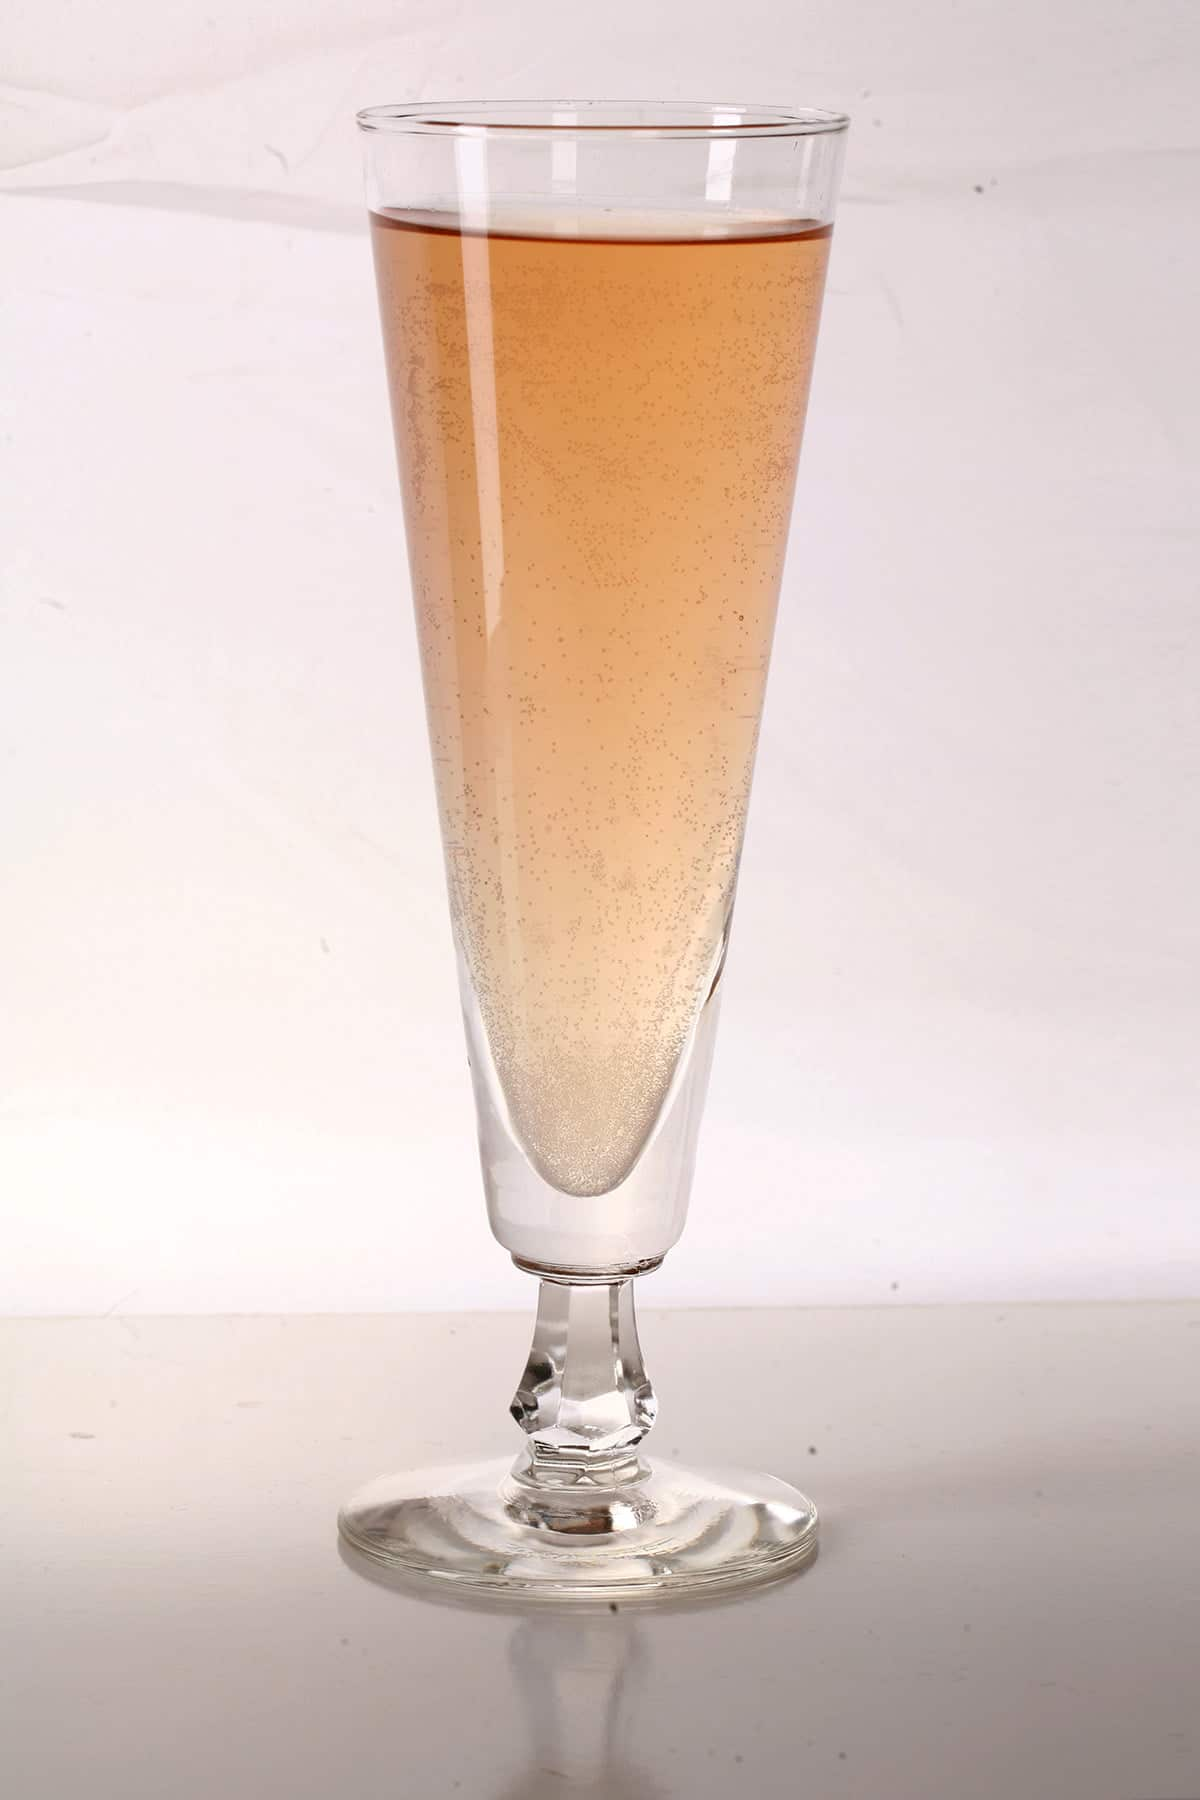 A beer flute filled with hard iced tea, against a white and greyish background.